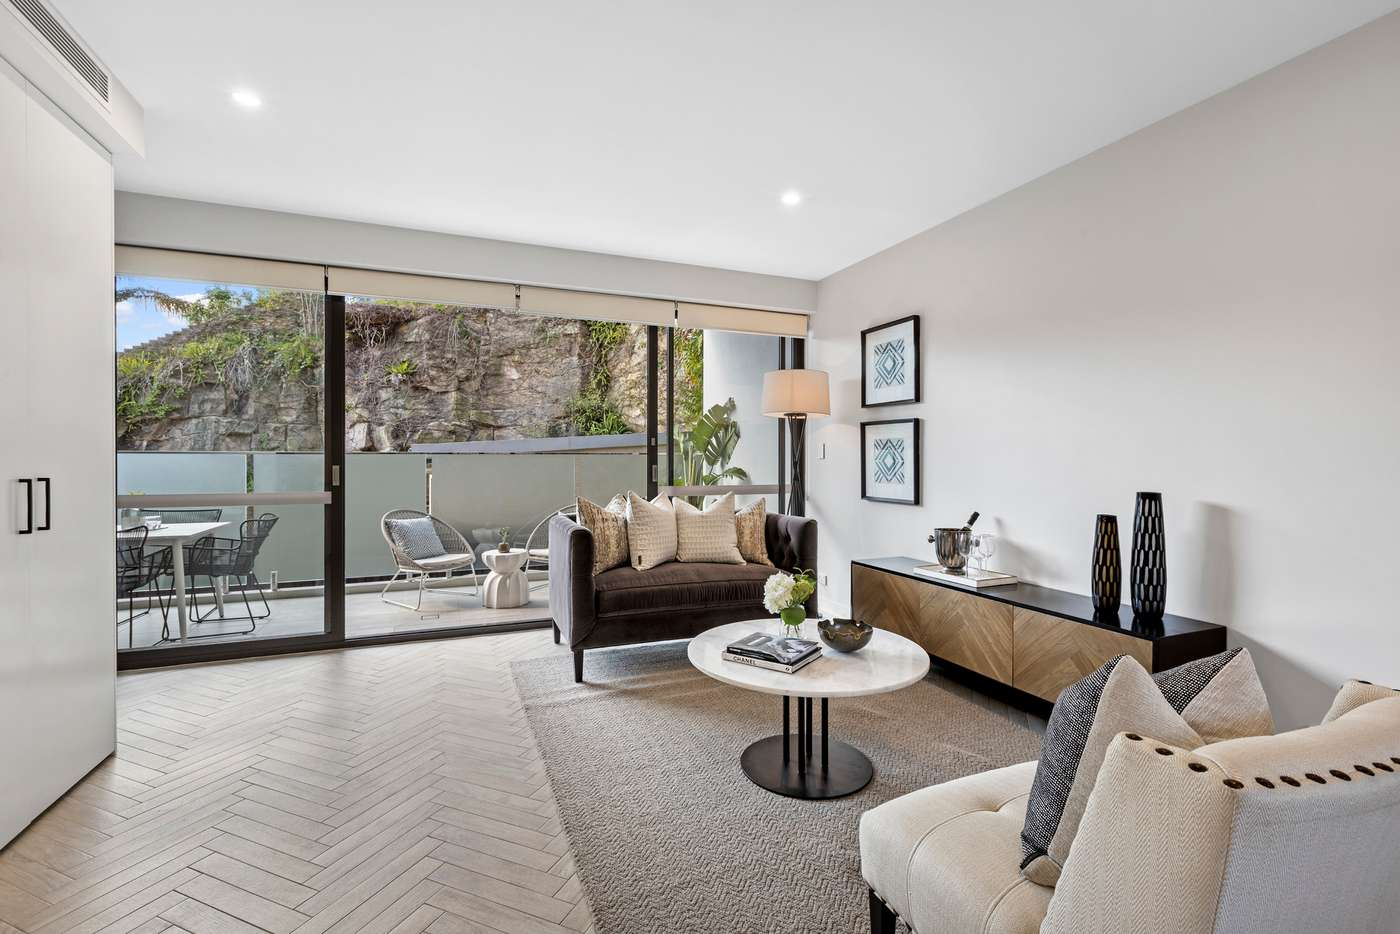 Main view of Homely apartment listing, 104/481 Willoughby Road, Willoughby NSW 2068